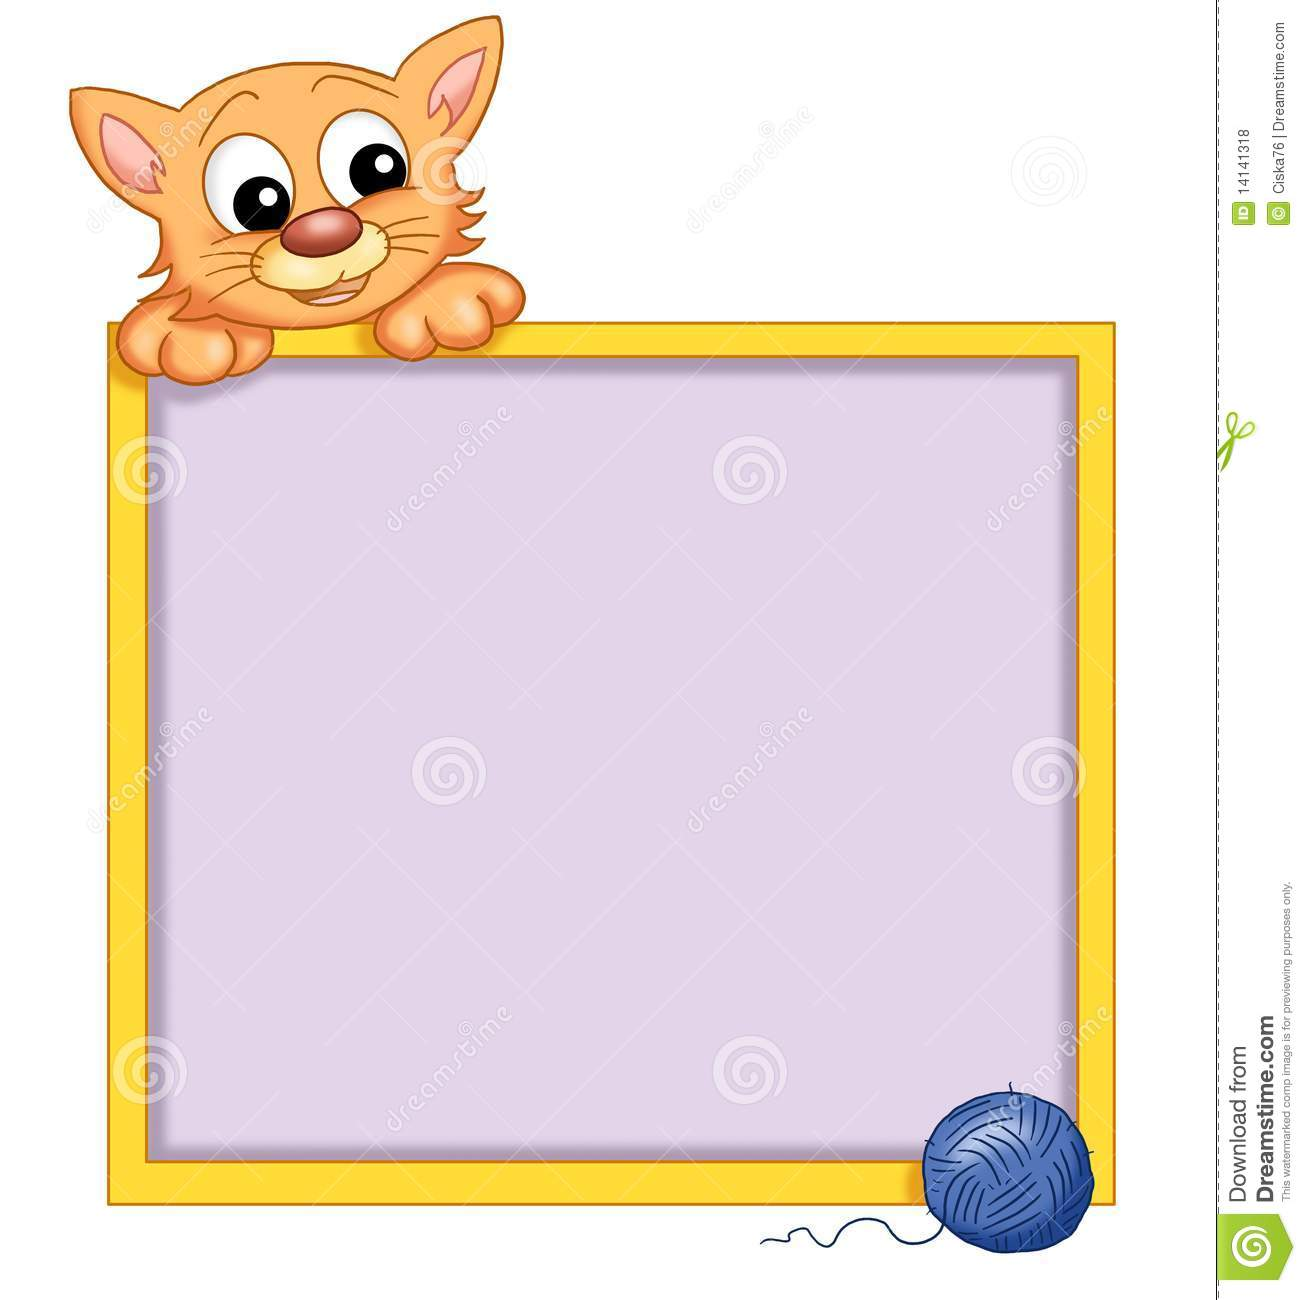 digital illustration of a frame with a nice cat that wants his ball